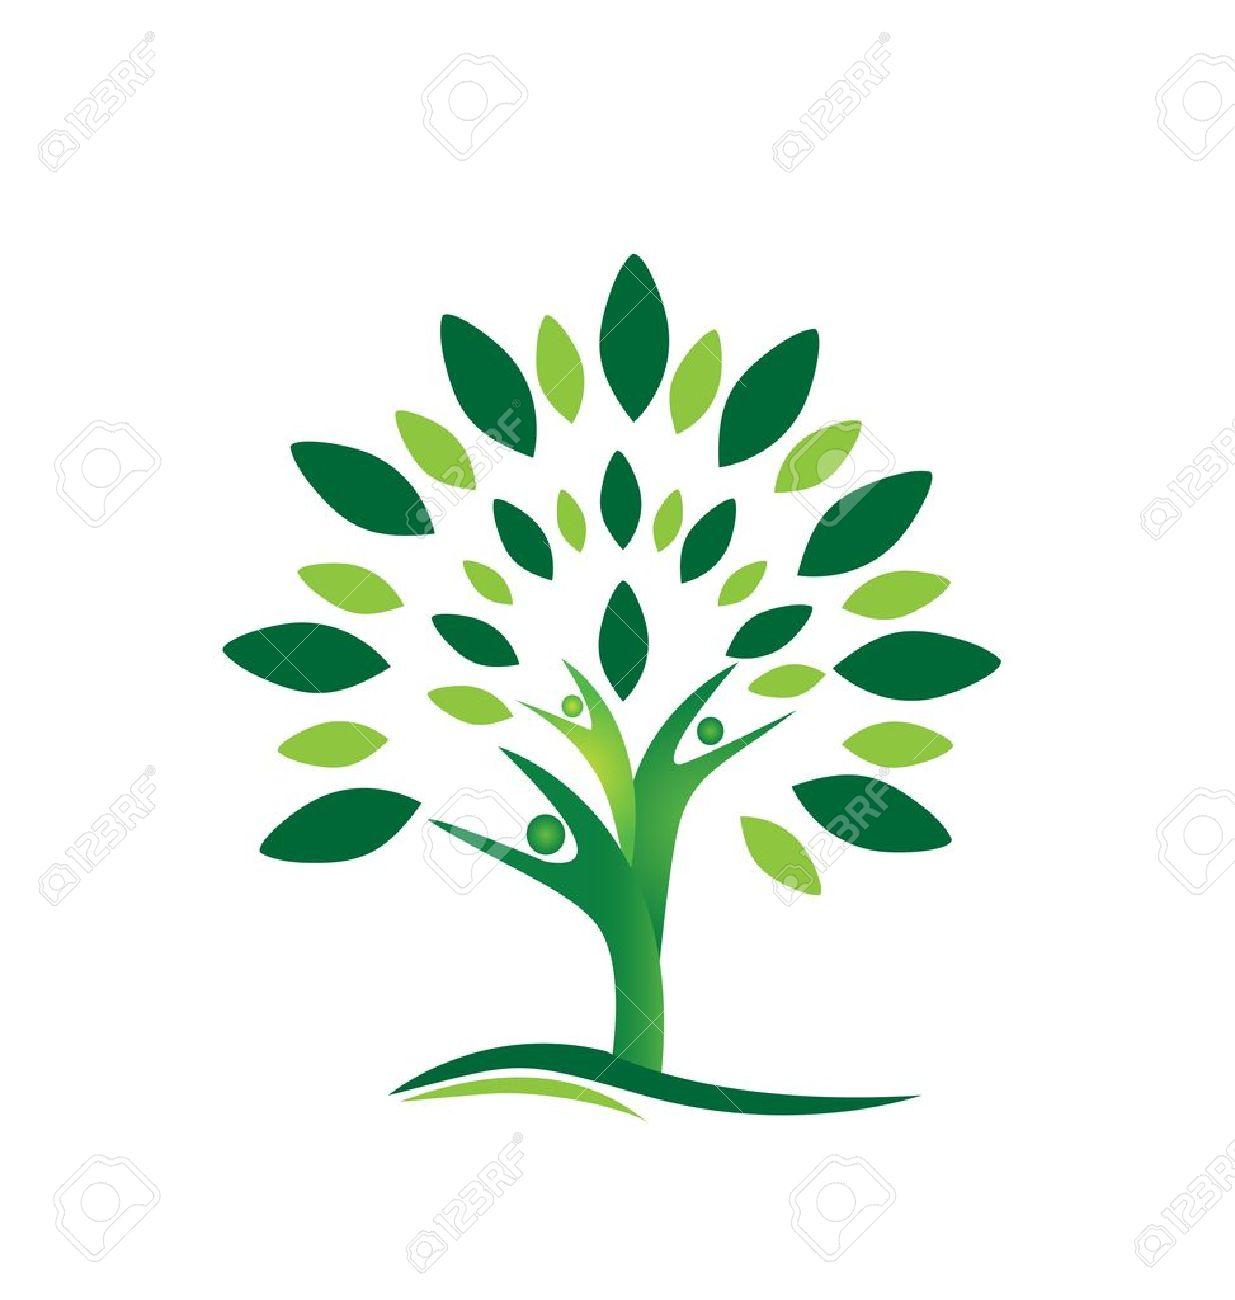 Teamwork people tree abstract icon background Stock Vector - 21769988